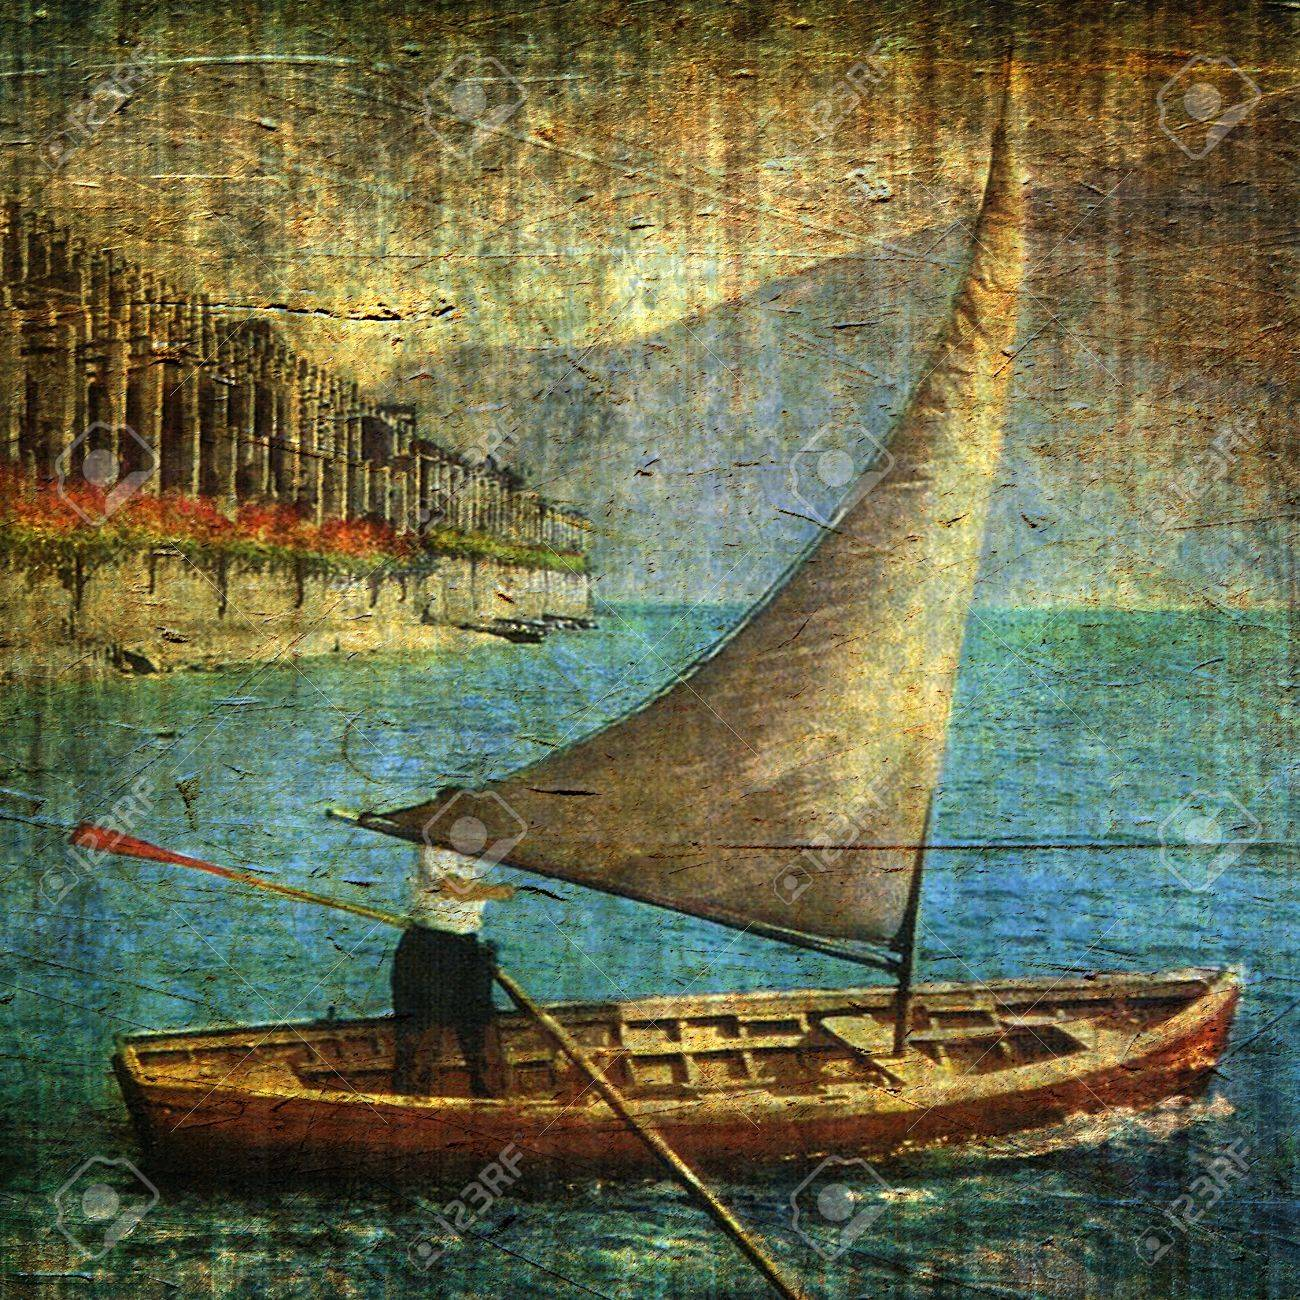 Vintage illustration with sailing ship and grunge background Stock Photo - 9808531